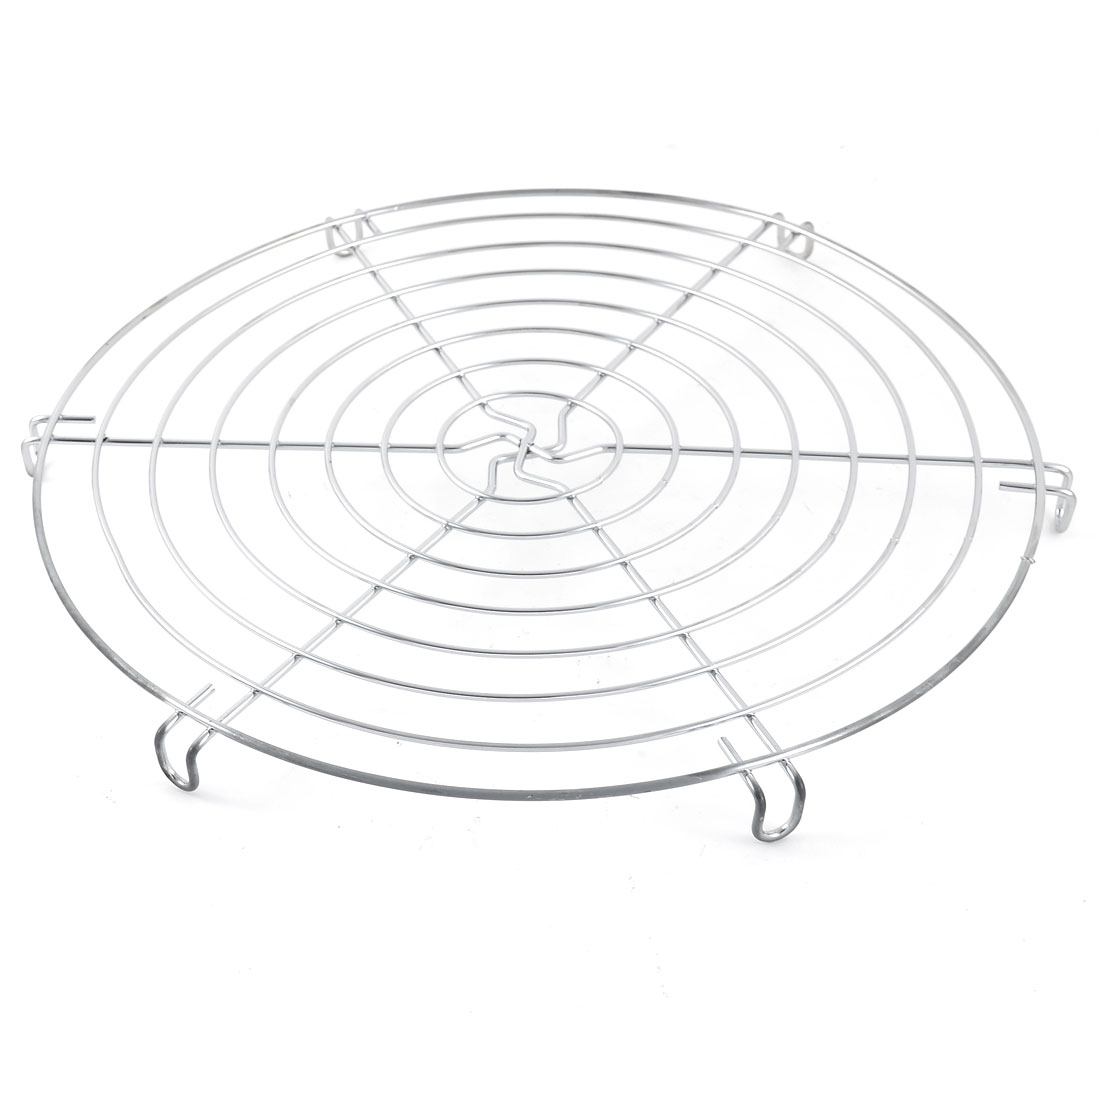 Metal Round Shape Cake Fondant Muffin Cookie Pancake Pie Cooling Rack Silver Tone 30cm